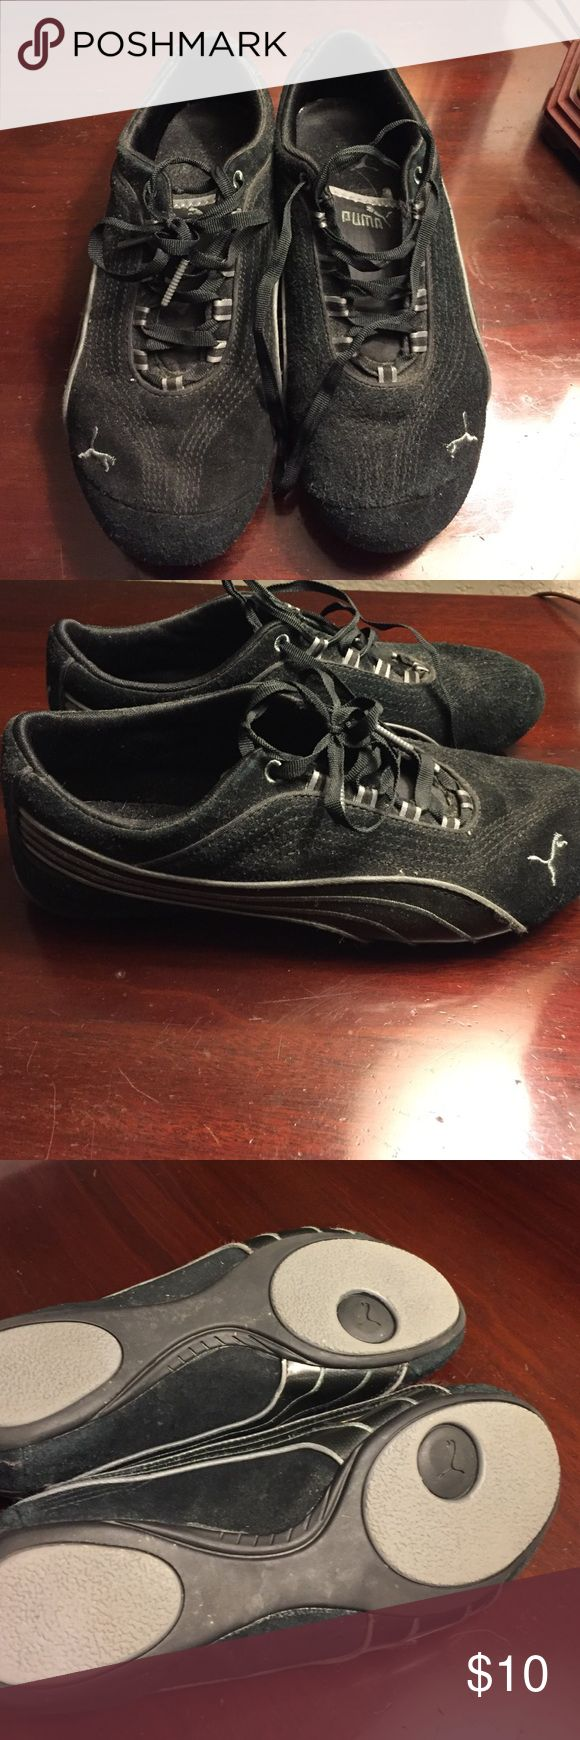 Shoes Ladies black Puma casual sneakers. Comfy and slightly worn. Great for city walking when you don't want your full on sneakers! Puma Shoes Sneakers